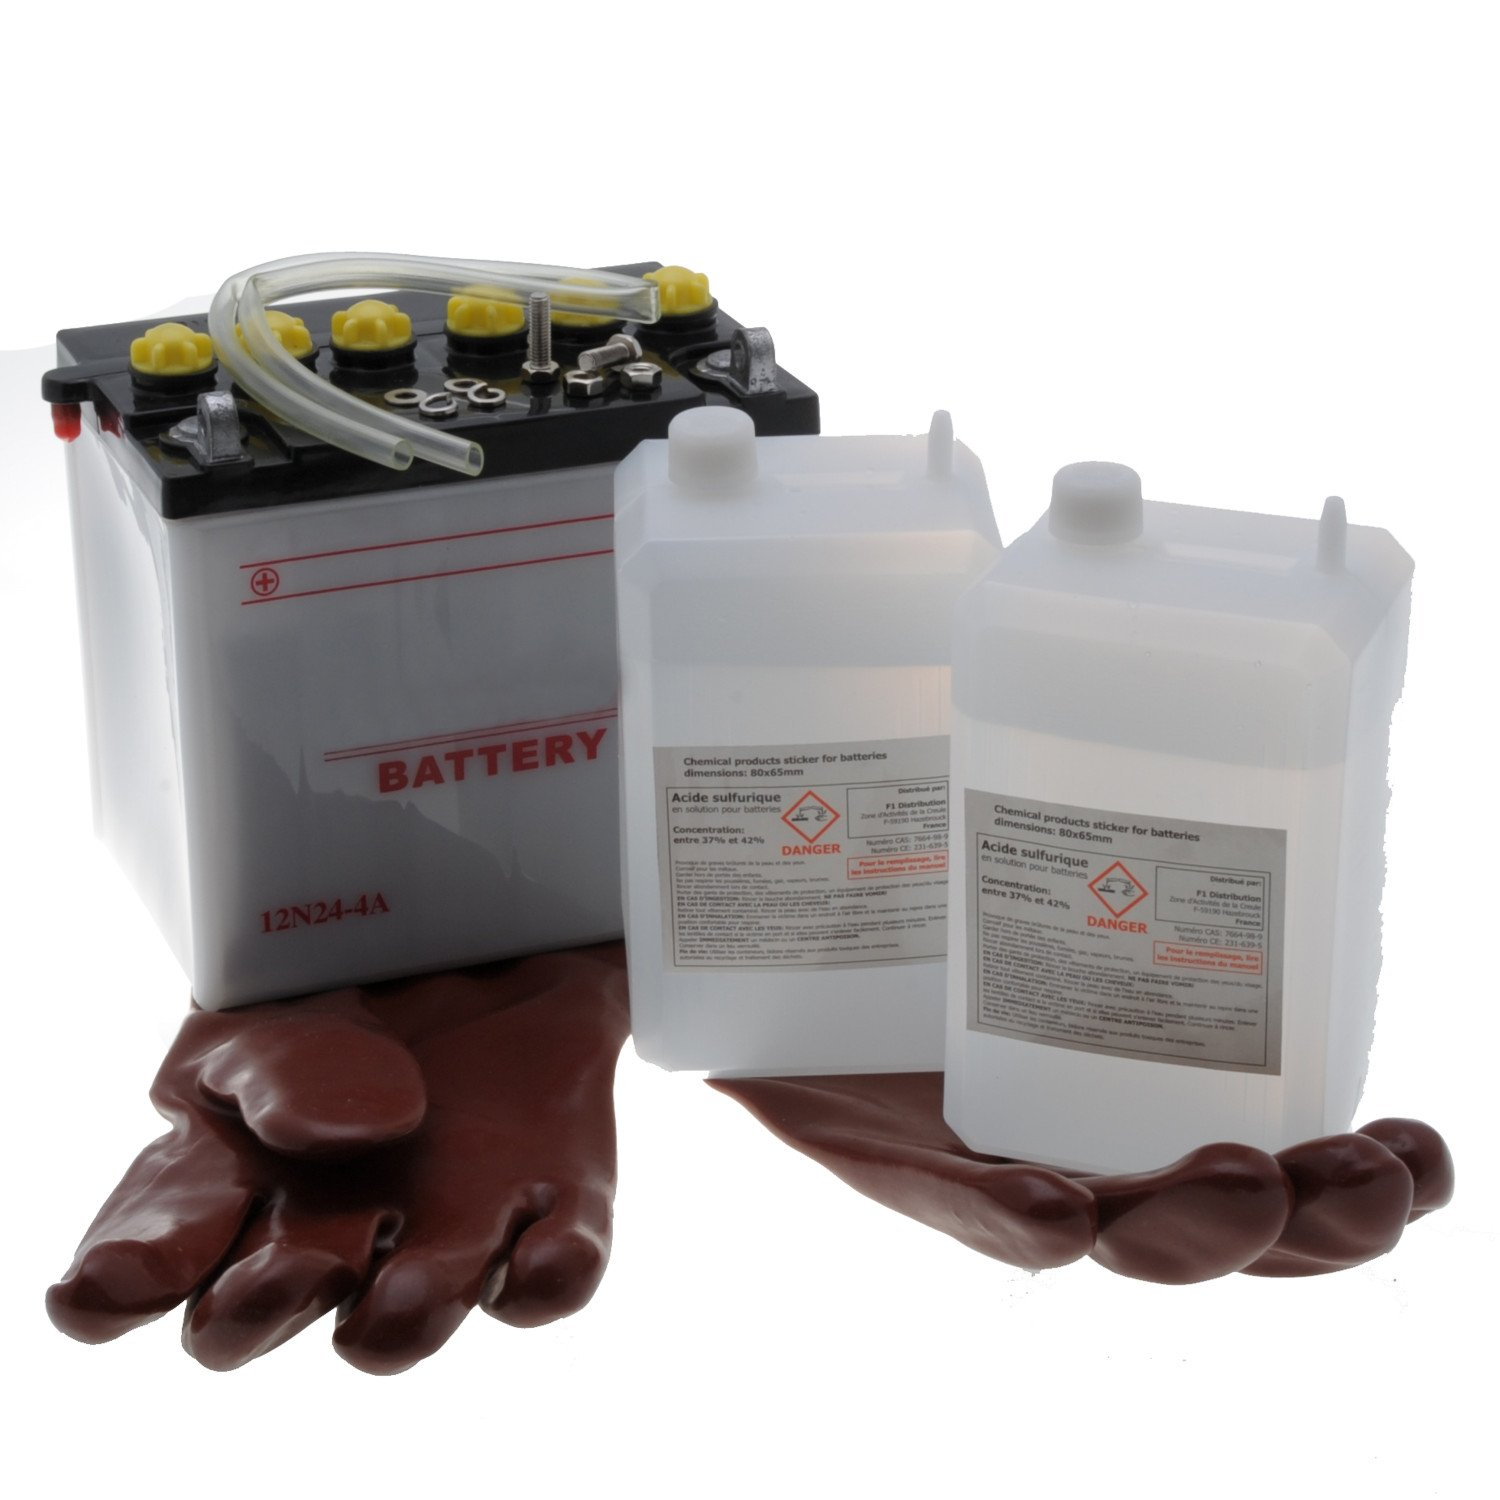 The Tractor Tractor Battery 12N24-4Comes With Acid Jardiaffaires